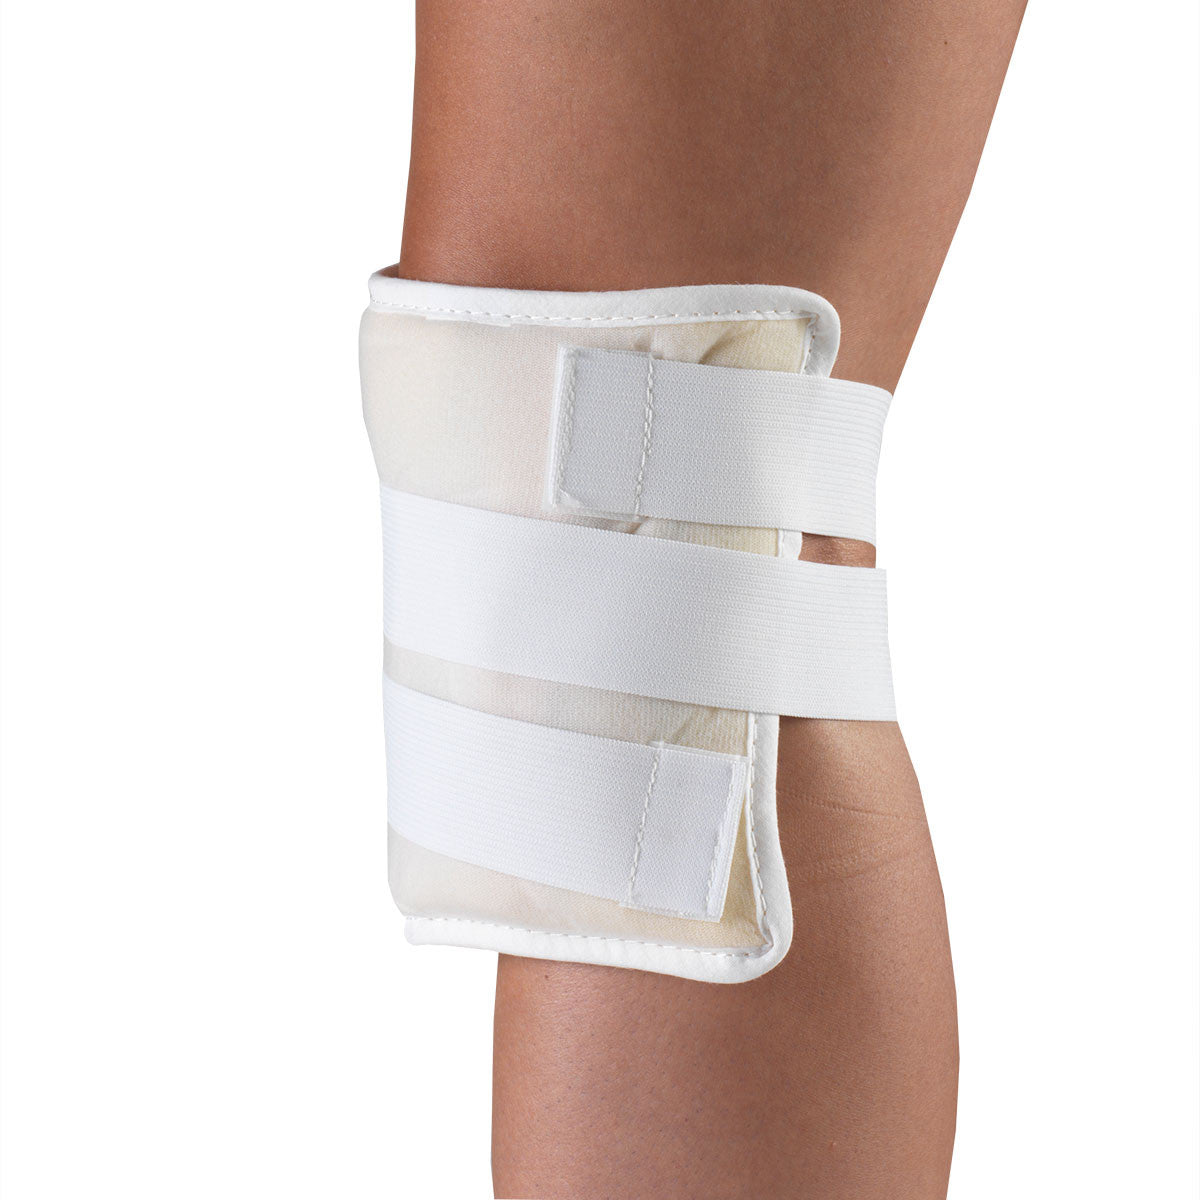 THERMA-KOOL REUSABLE HOT & COLD COMPRESS ON KNEE